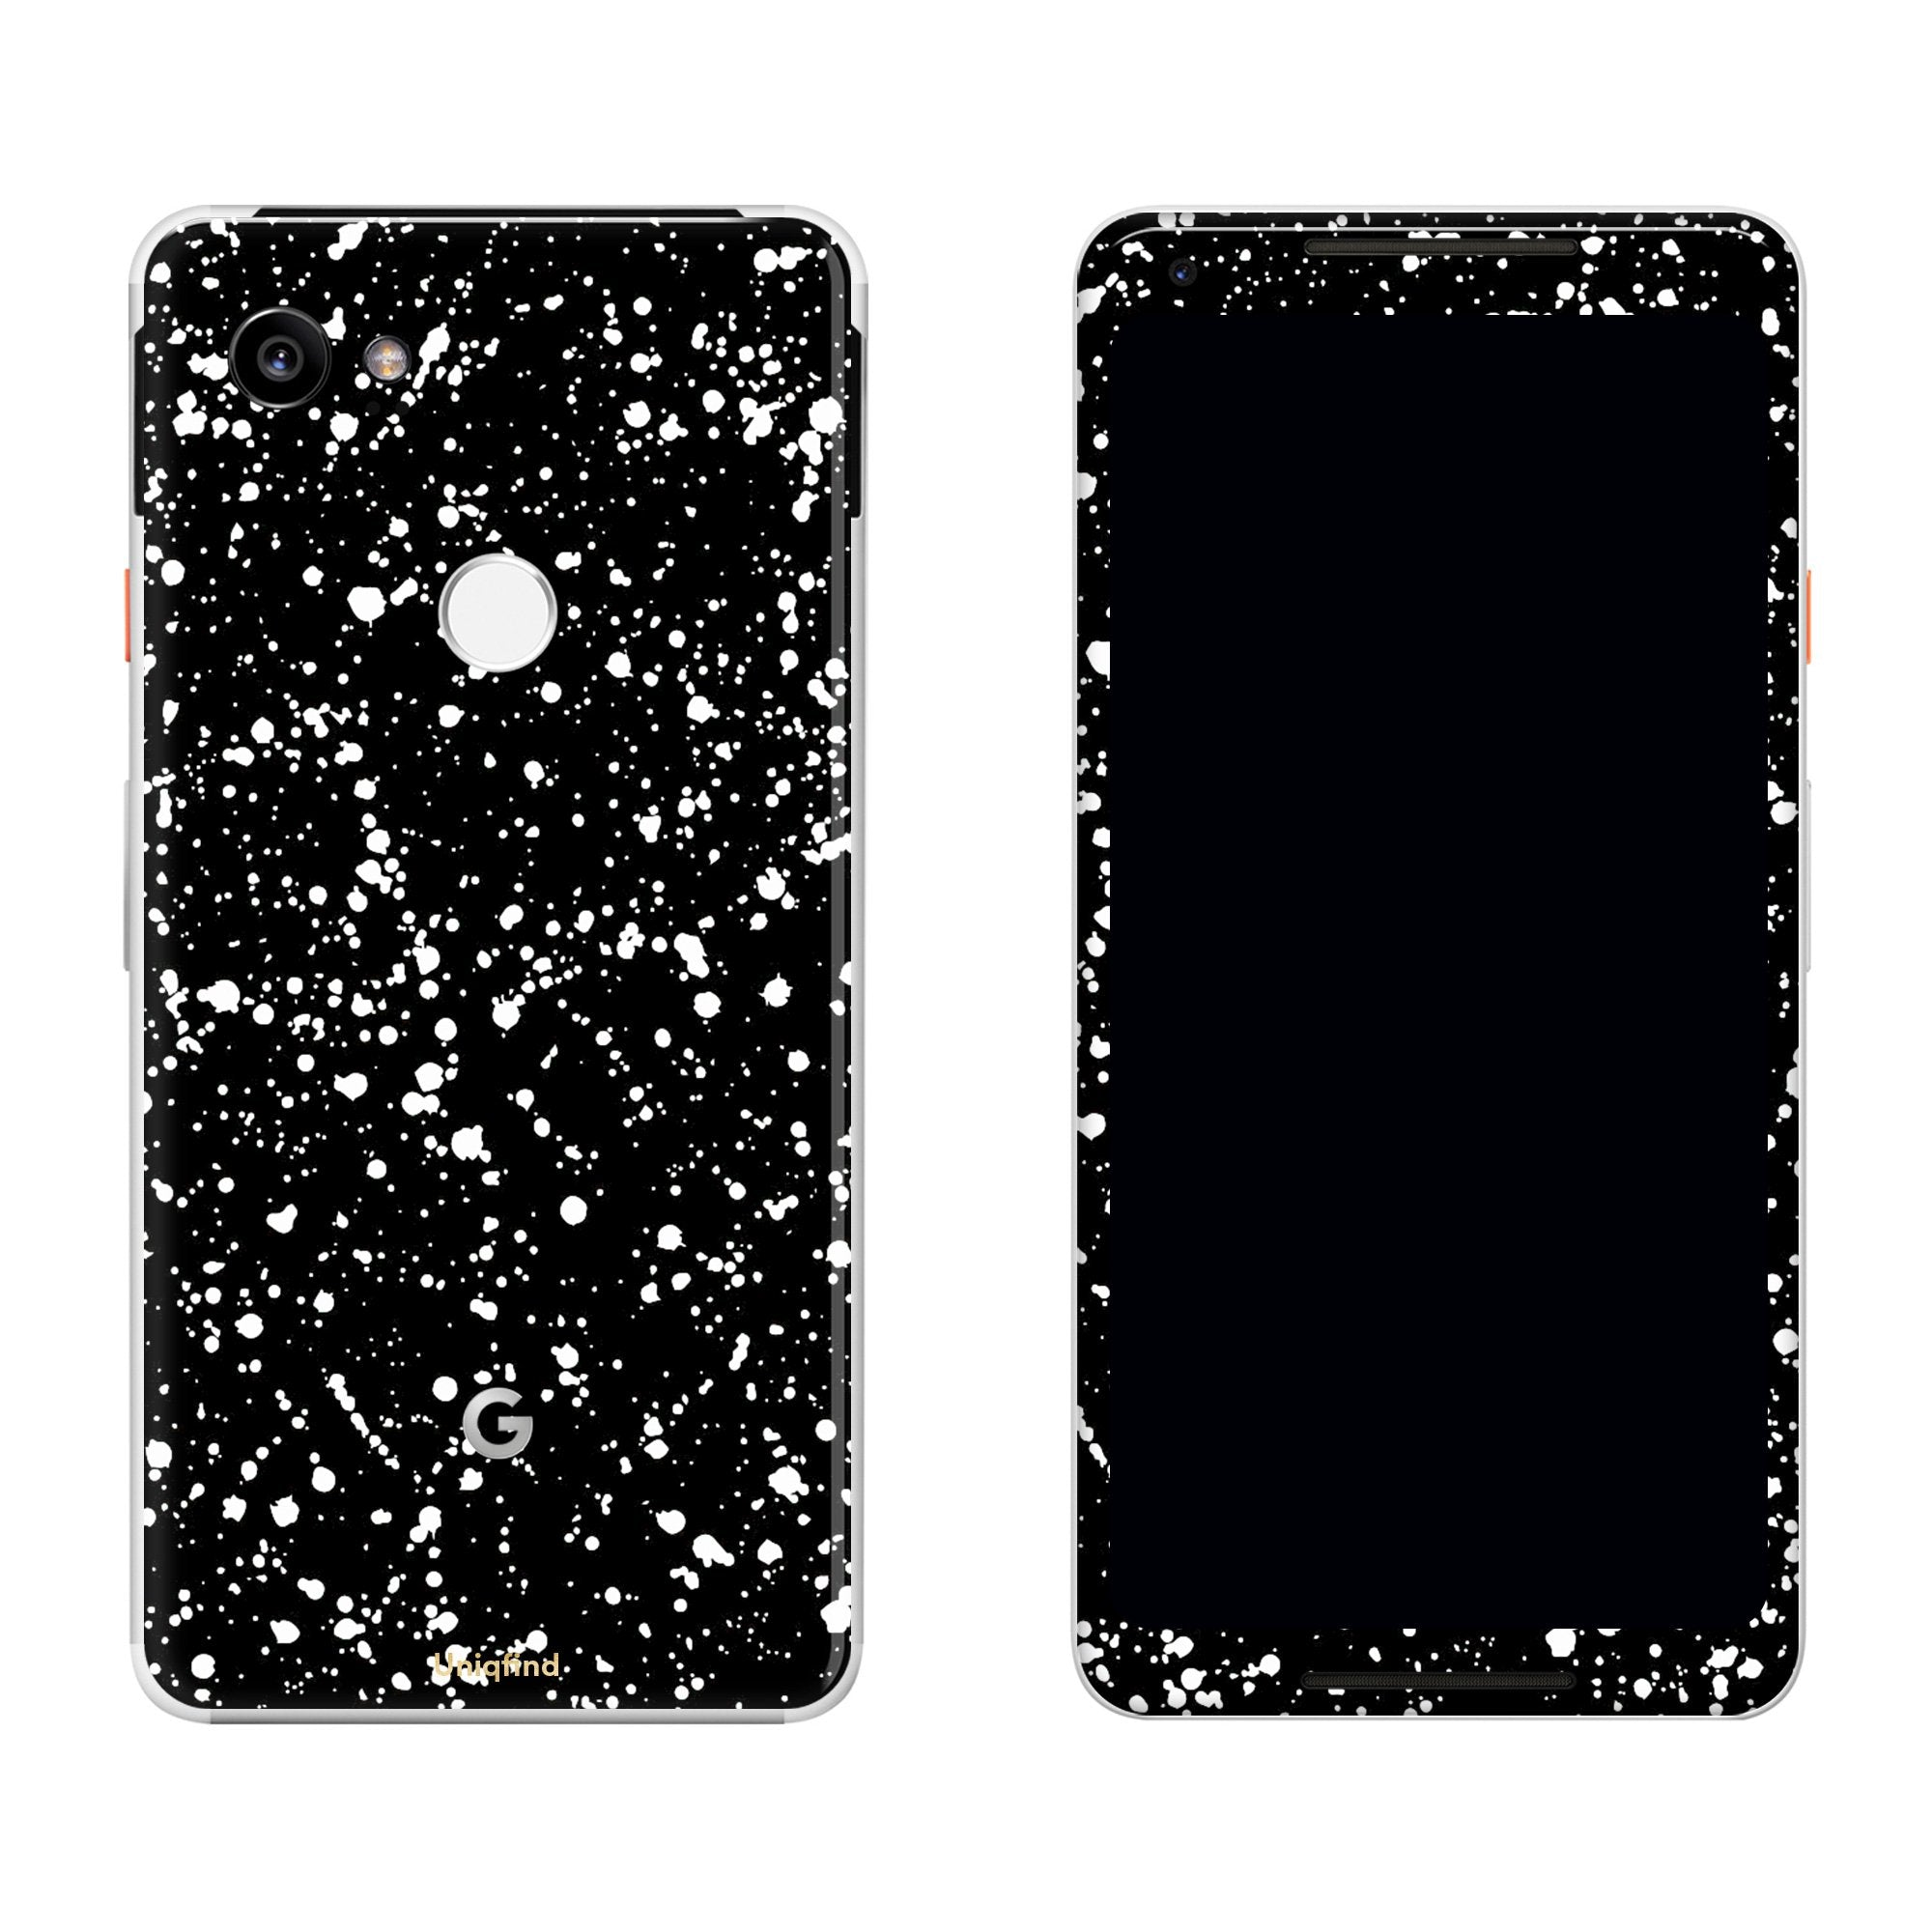 Black Speckle Pixel 2 XL Skin + Case